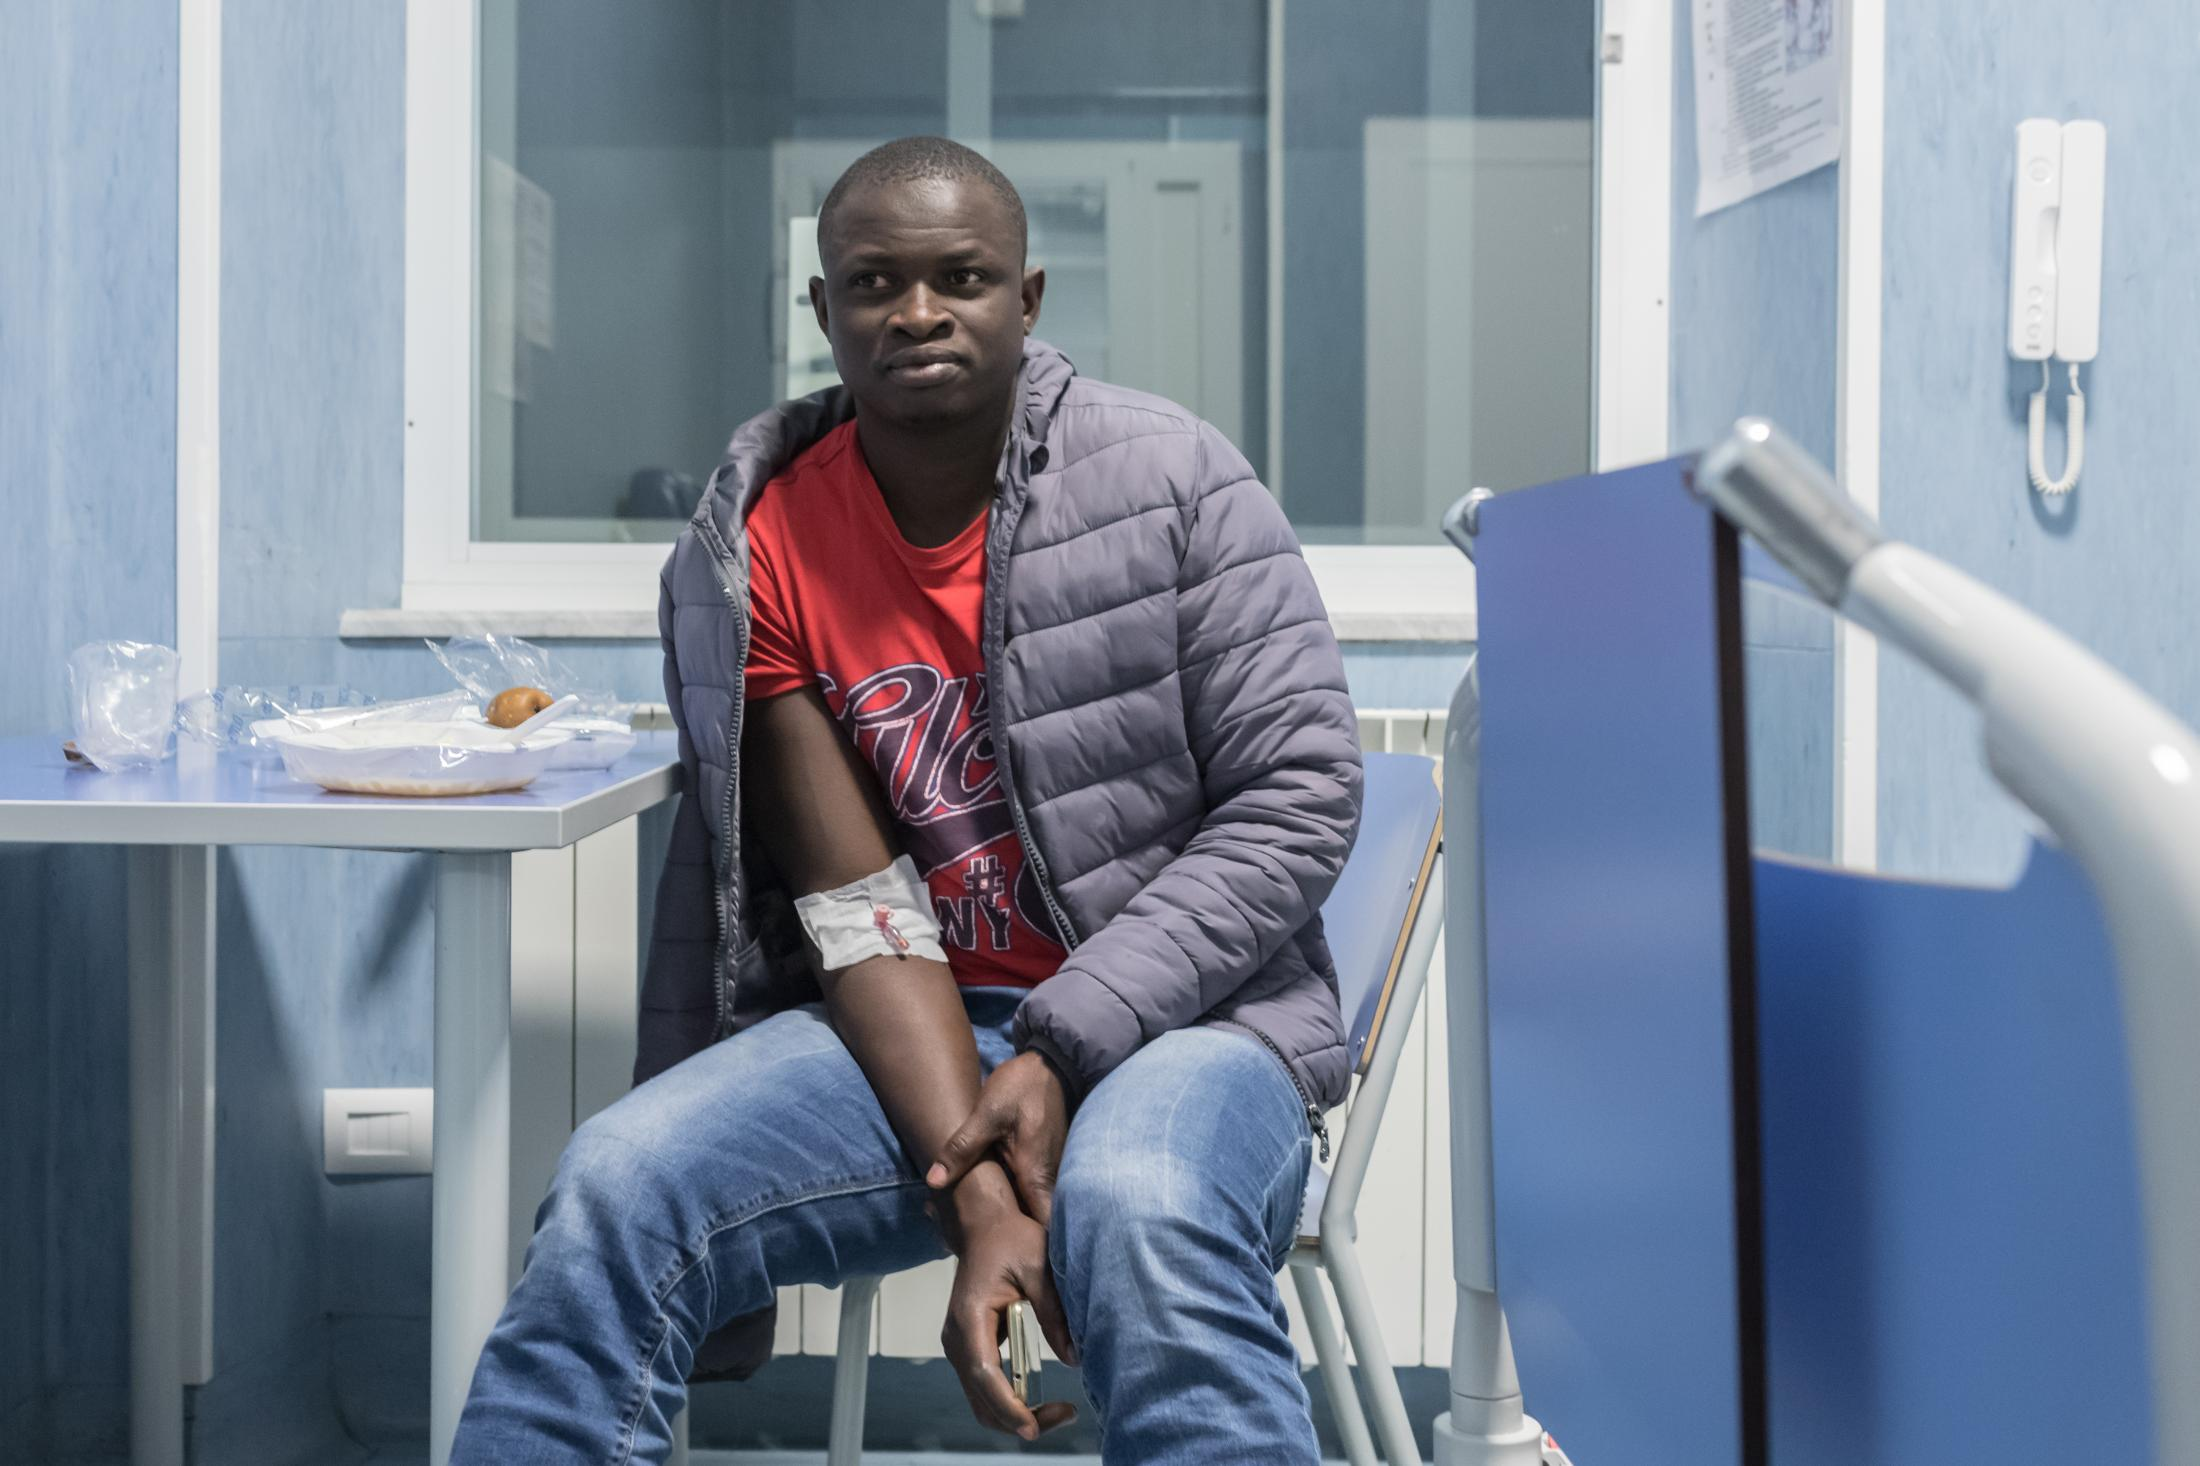 Healty cure in a pubblic hospital in Italy to a refugee waiting for humanitarian permiss